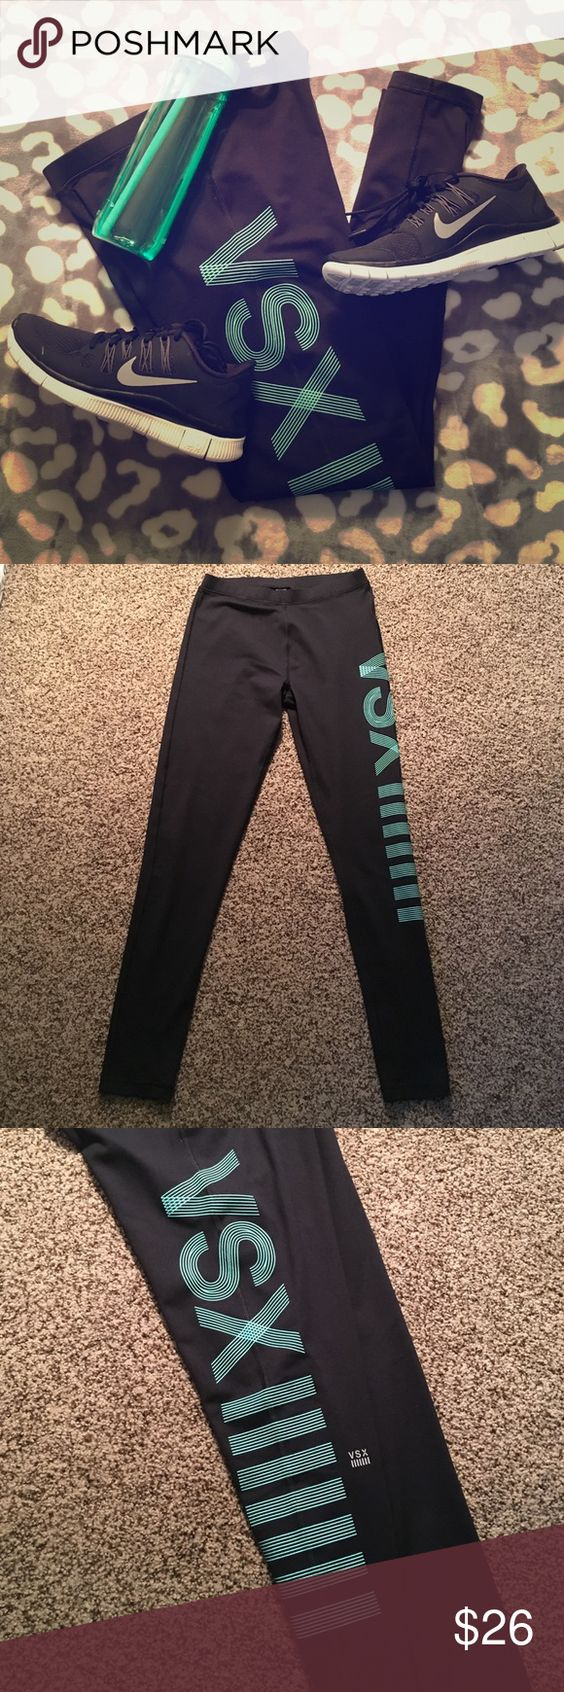 🆕 Victoria's Secret Sport leggings Head to the gym in style in these graphic printed Victoria's Secret Sport leggings. Light blue graphic down left leg and silver logo. Size small Short. Inseam measures 27 inches. Sneakers and water bottle NOT FOR SALE. EXCELLENT USED CONDITION. ✔️OPEN TO REASONABLE OFFERS✔️       🚫NO LOW BALLING🚫NO TRADING🚫 Victoria's Secret Pants Leggings